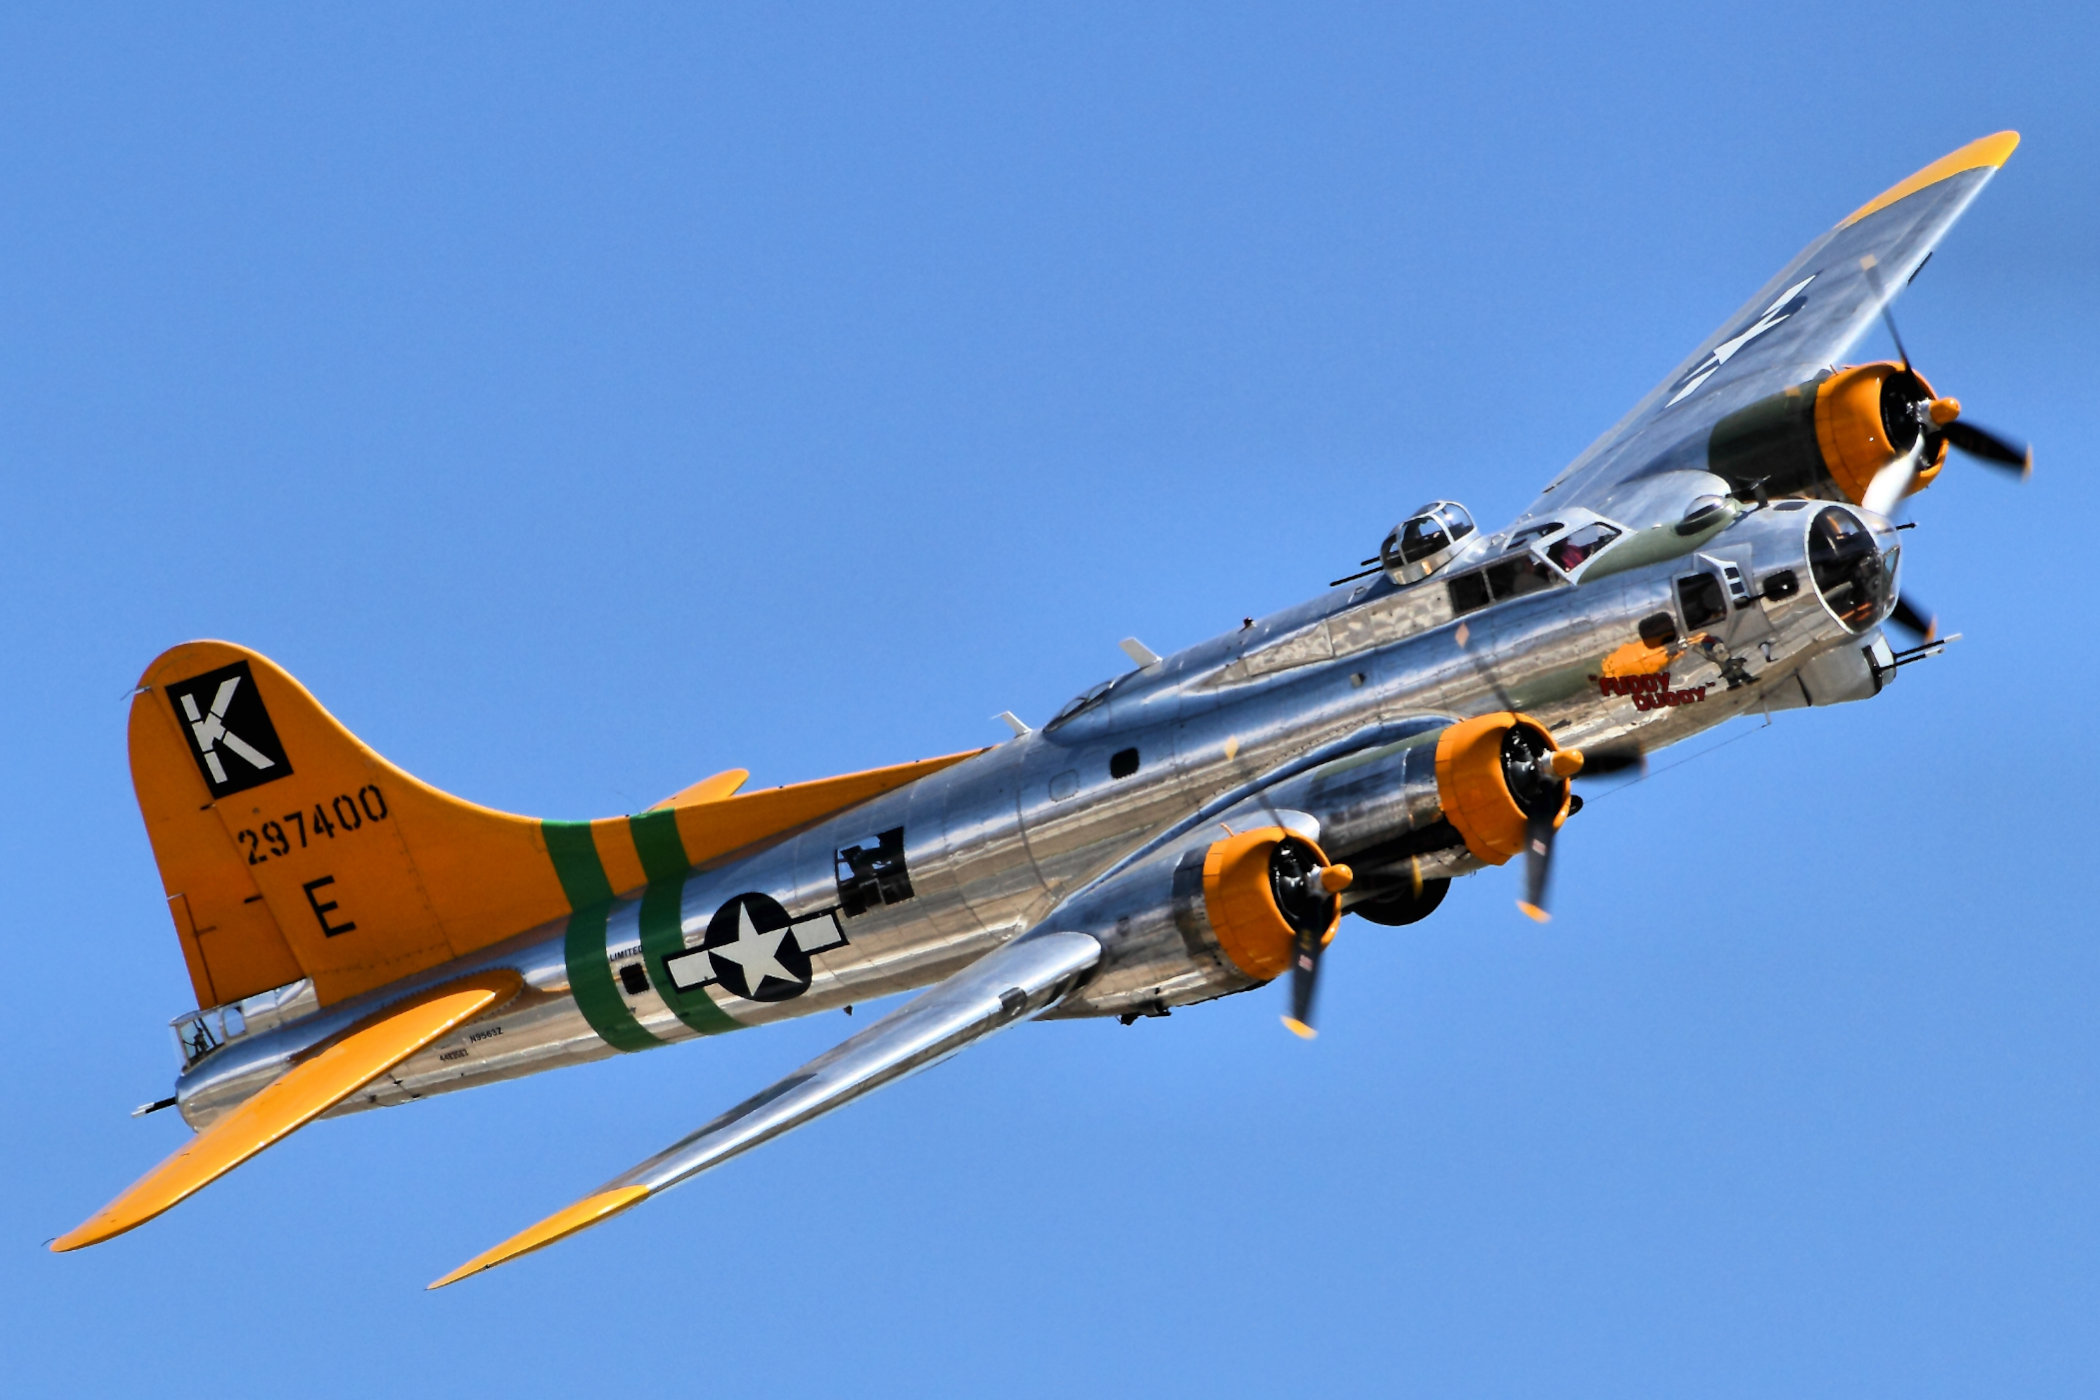 WWII Boeing B-17 Flying Fortress bomber aircraft using 4 Wright R1820 Cyclone 9-cylinder radial engines.